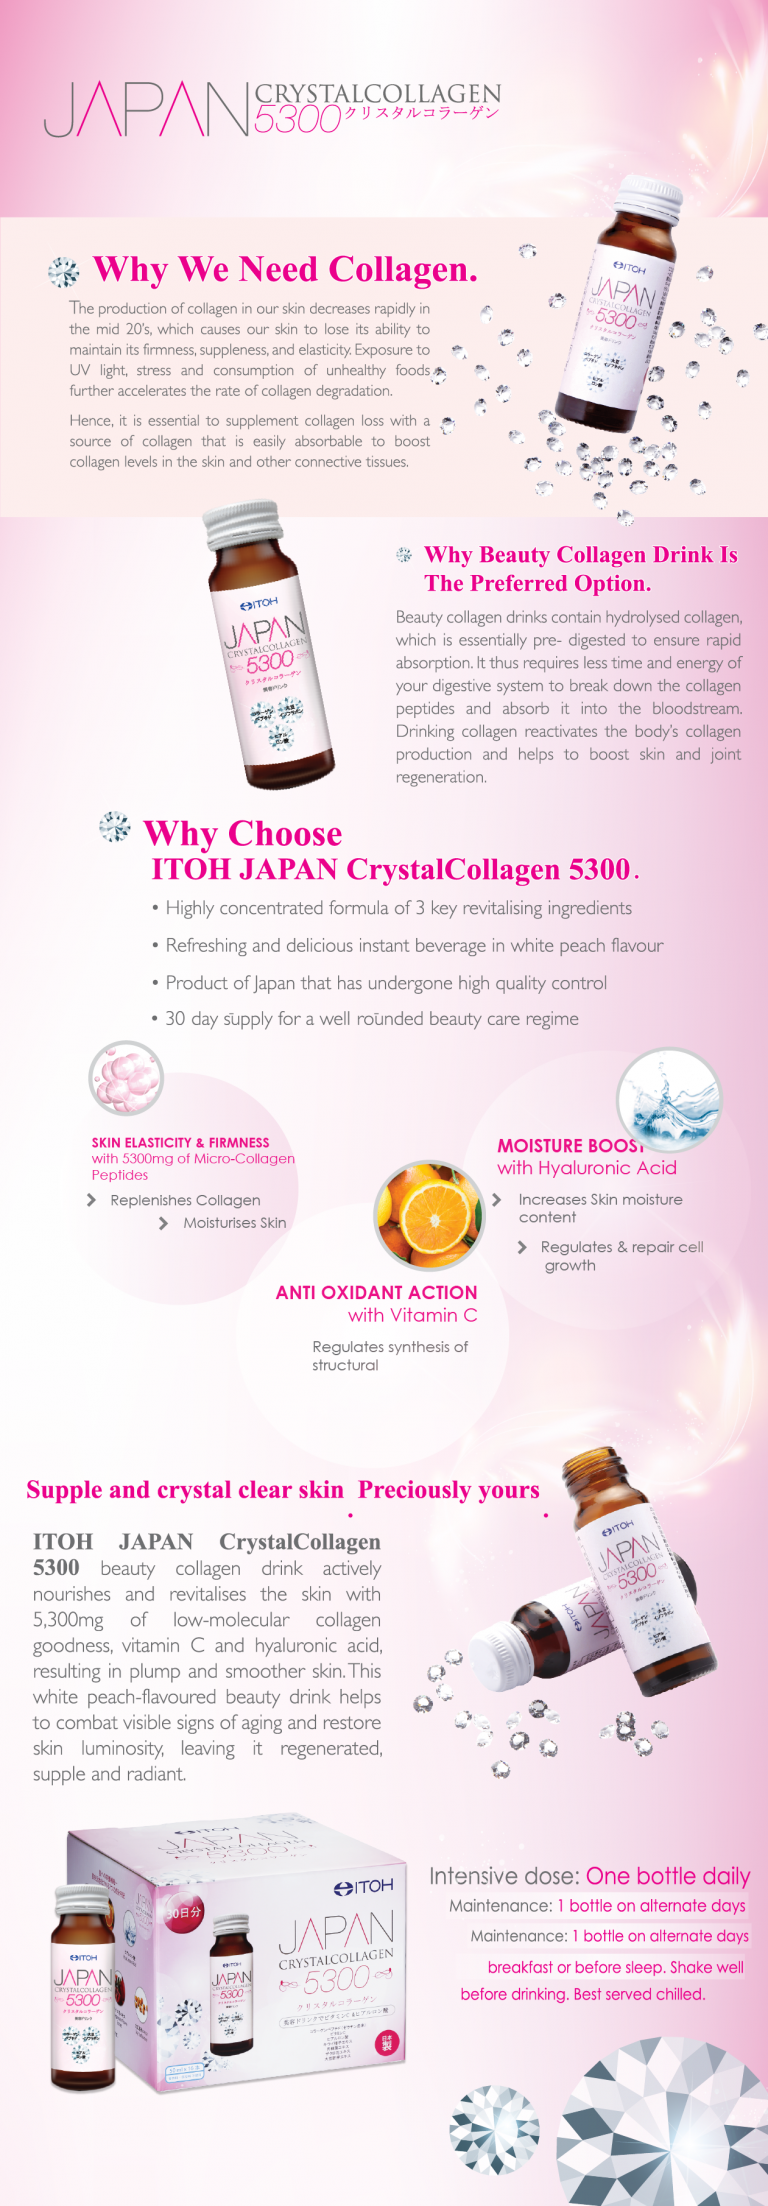 Japan Crystalcollagen 5300